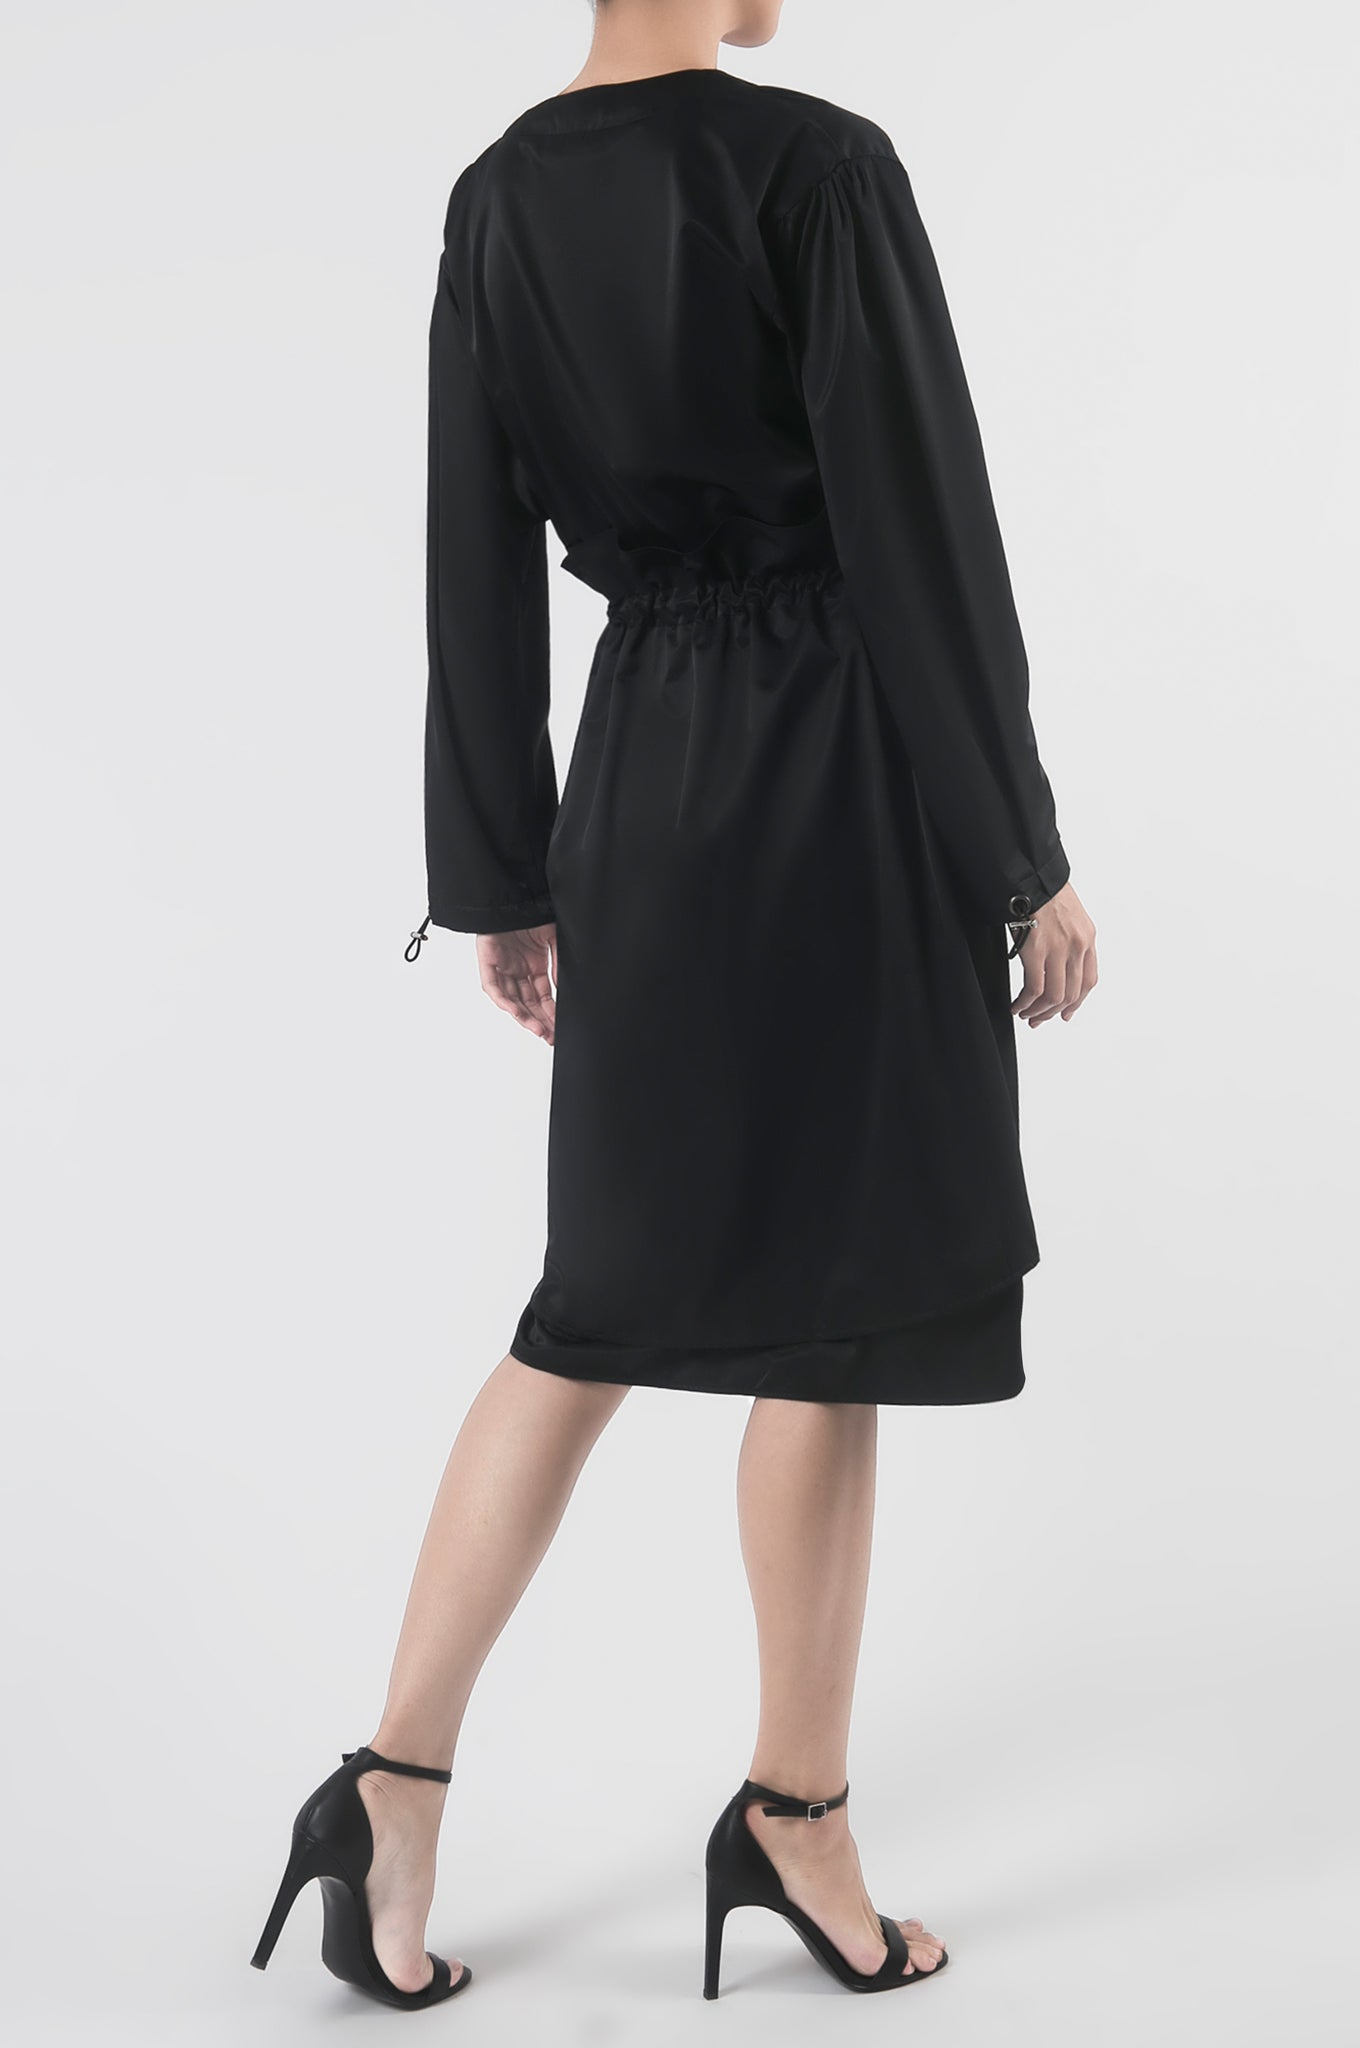 Black Nylon Dress with Drop Shoulders